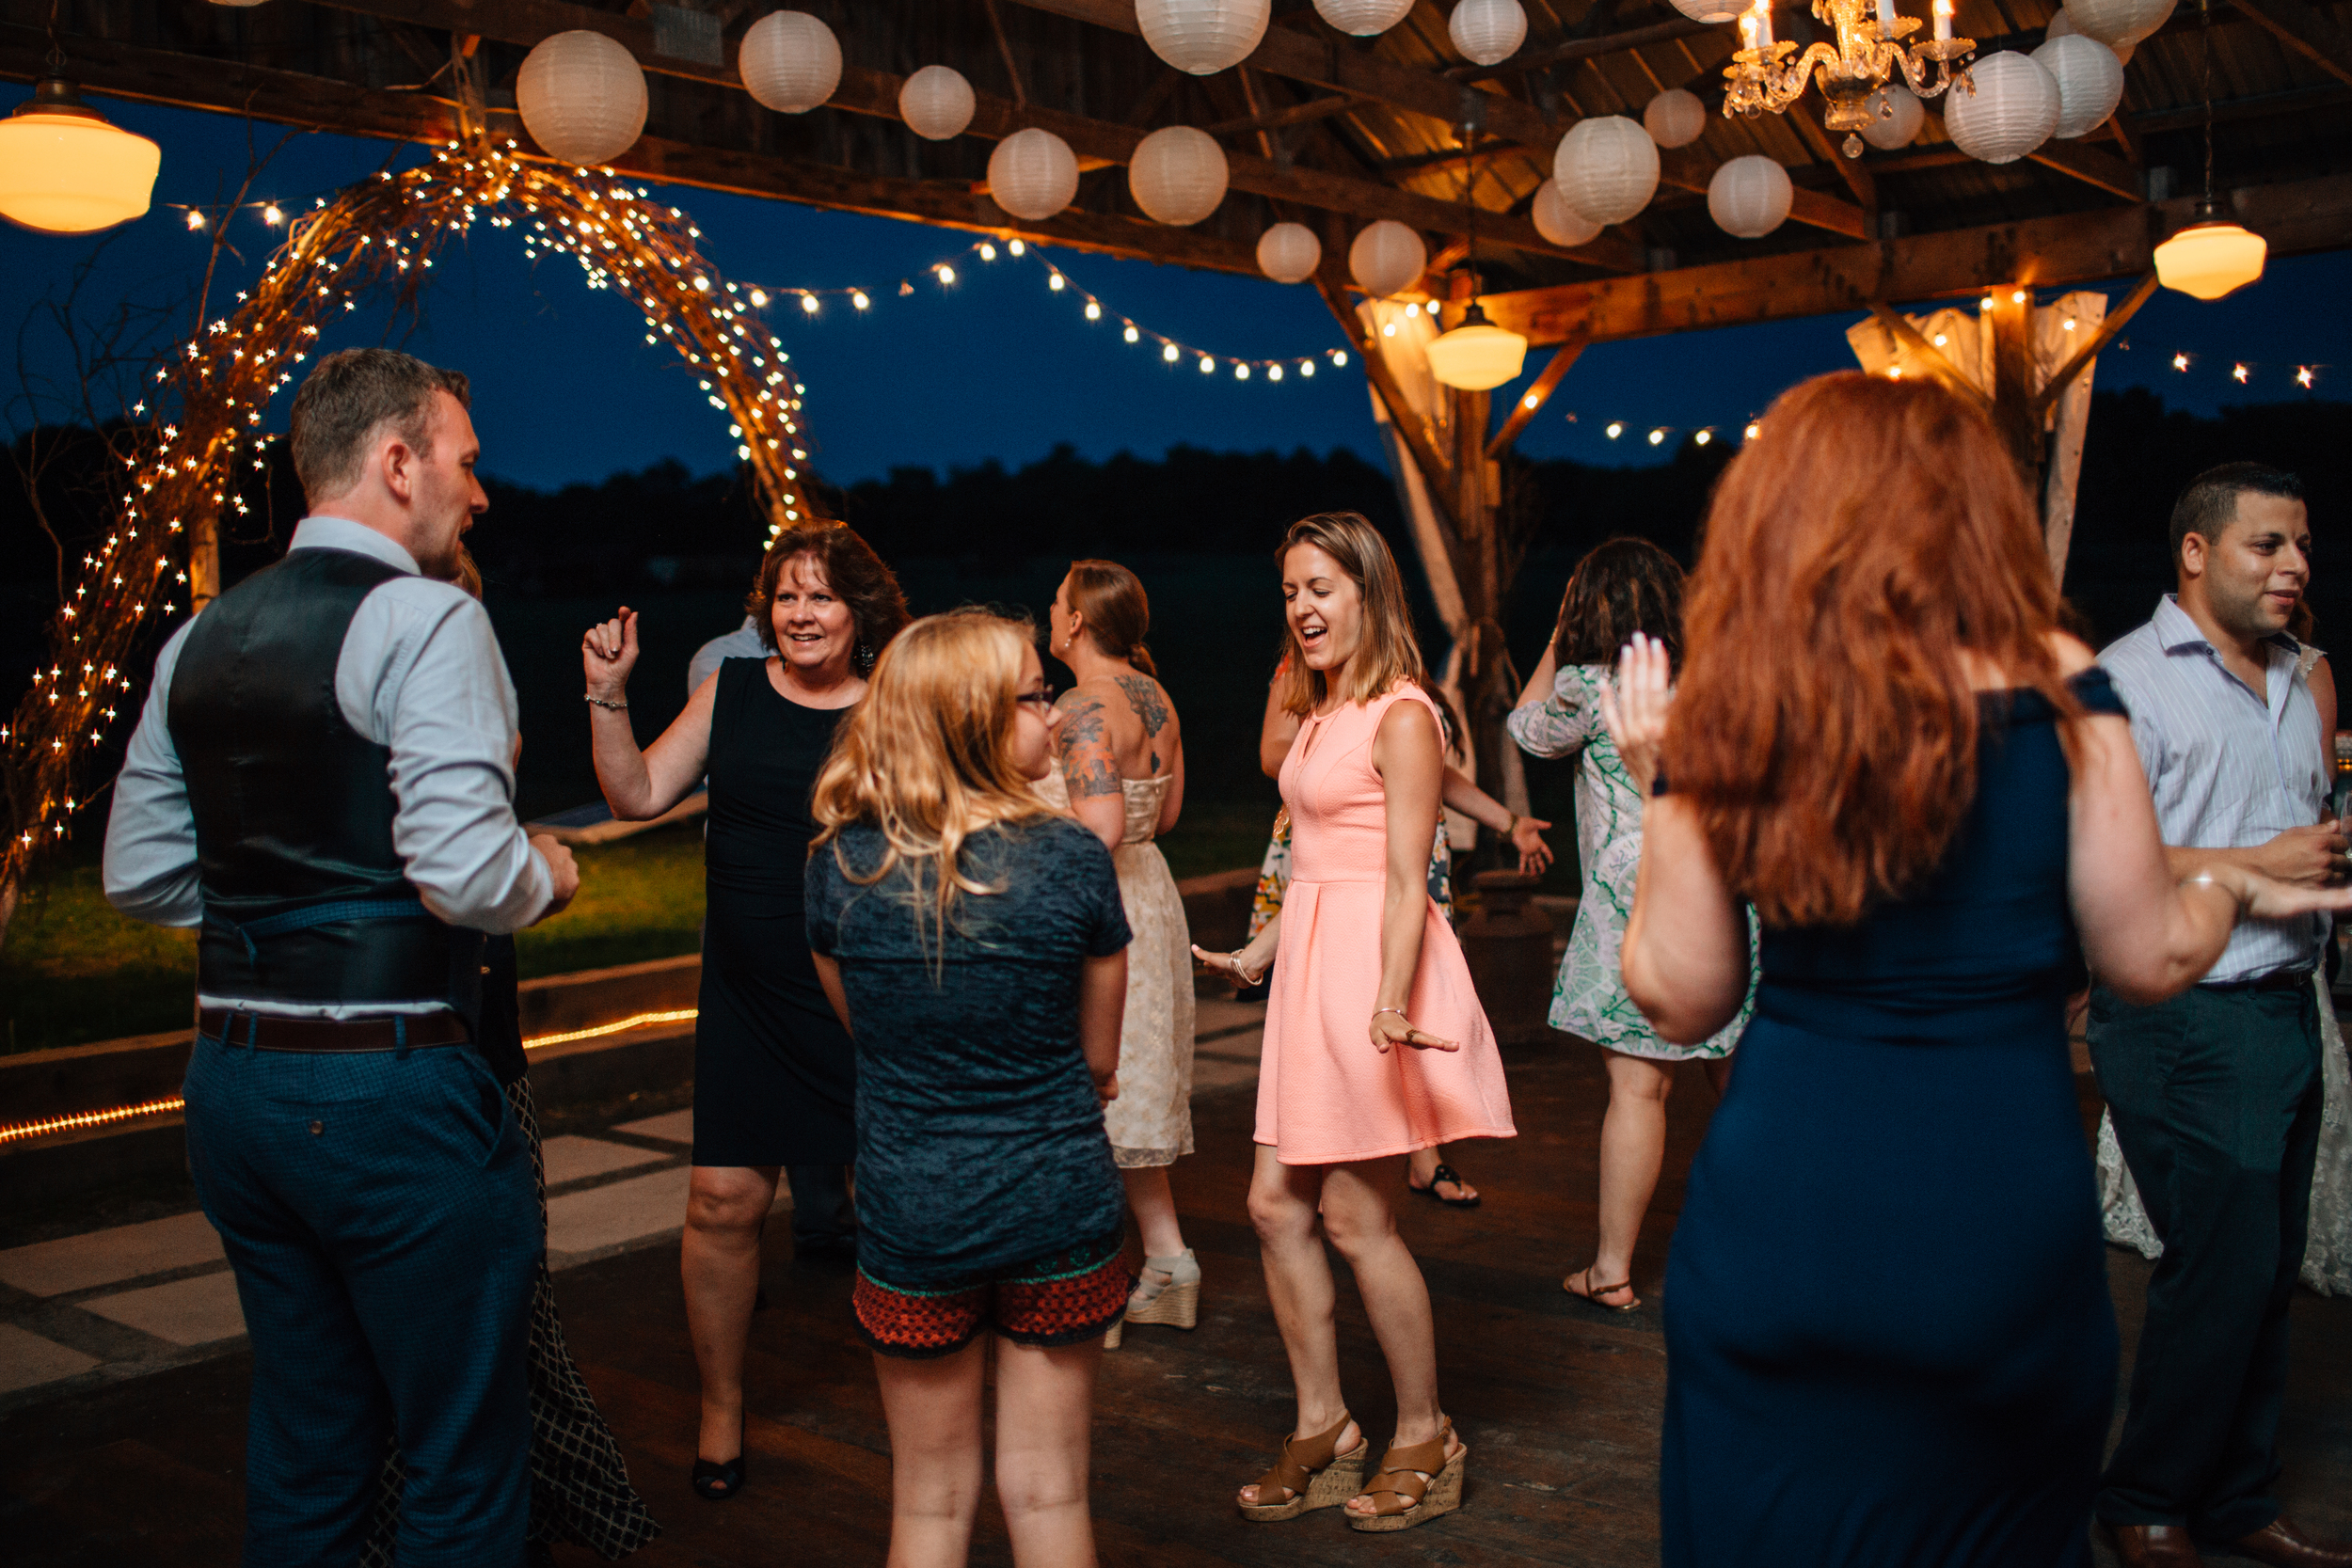 KELLIandBRADweddingJUNE2015 - reception (354 of 384).jpg